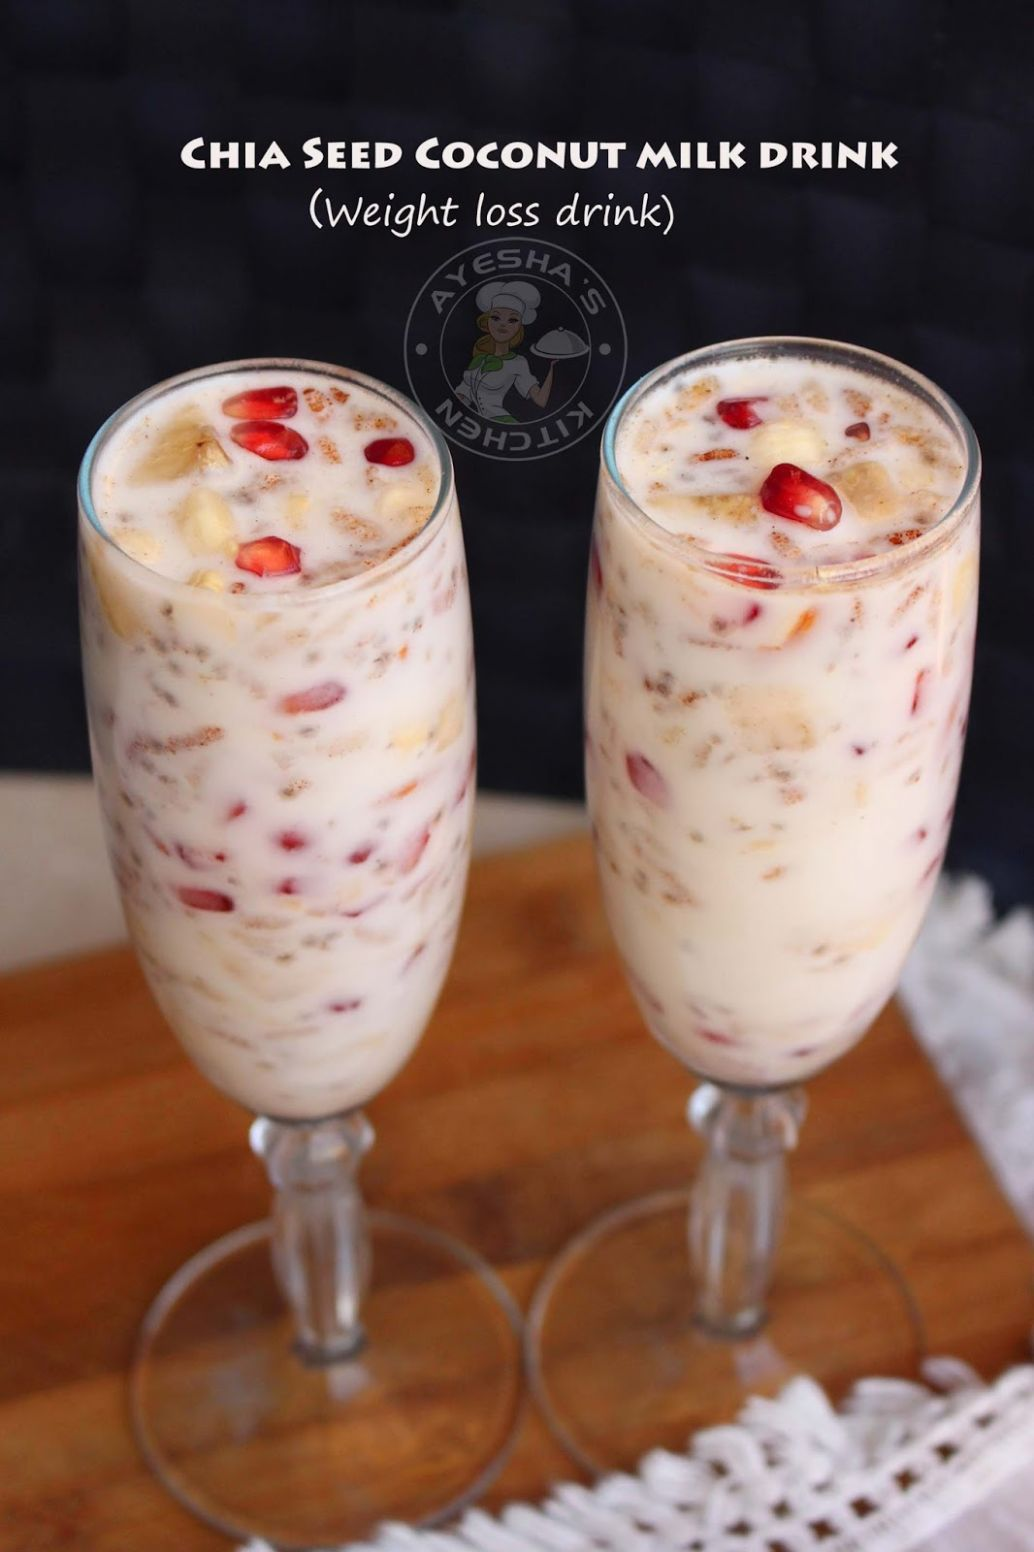 CHIA SEED COCONUT MILK DRINK - WEIGHT LOSS DRINKS - Recipe For Weight Loss Using Chia Seeds